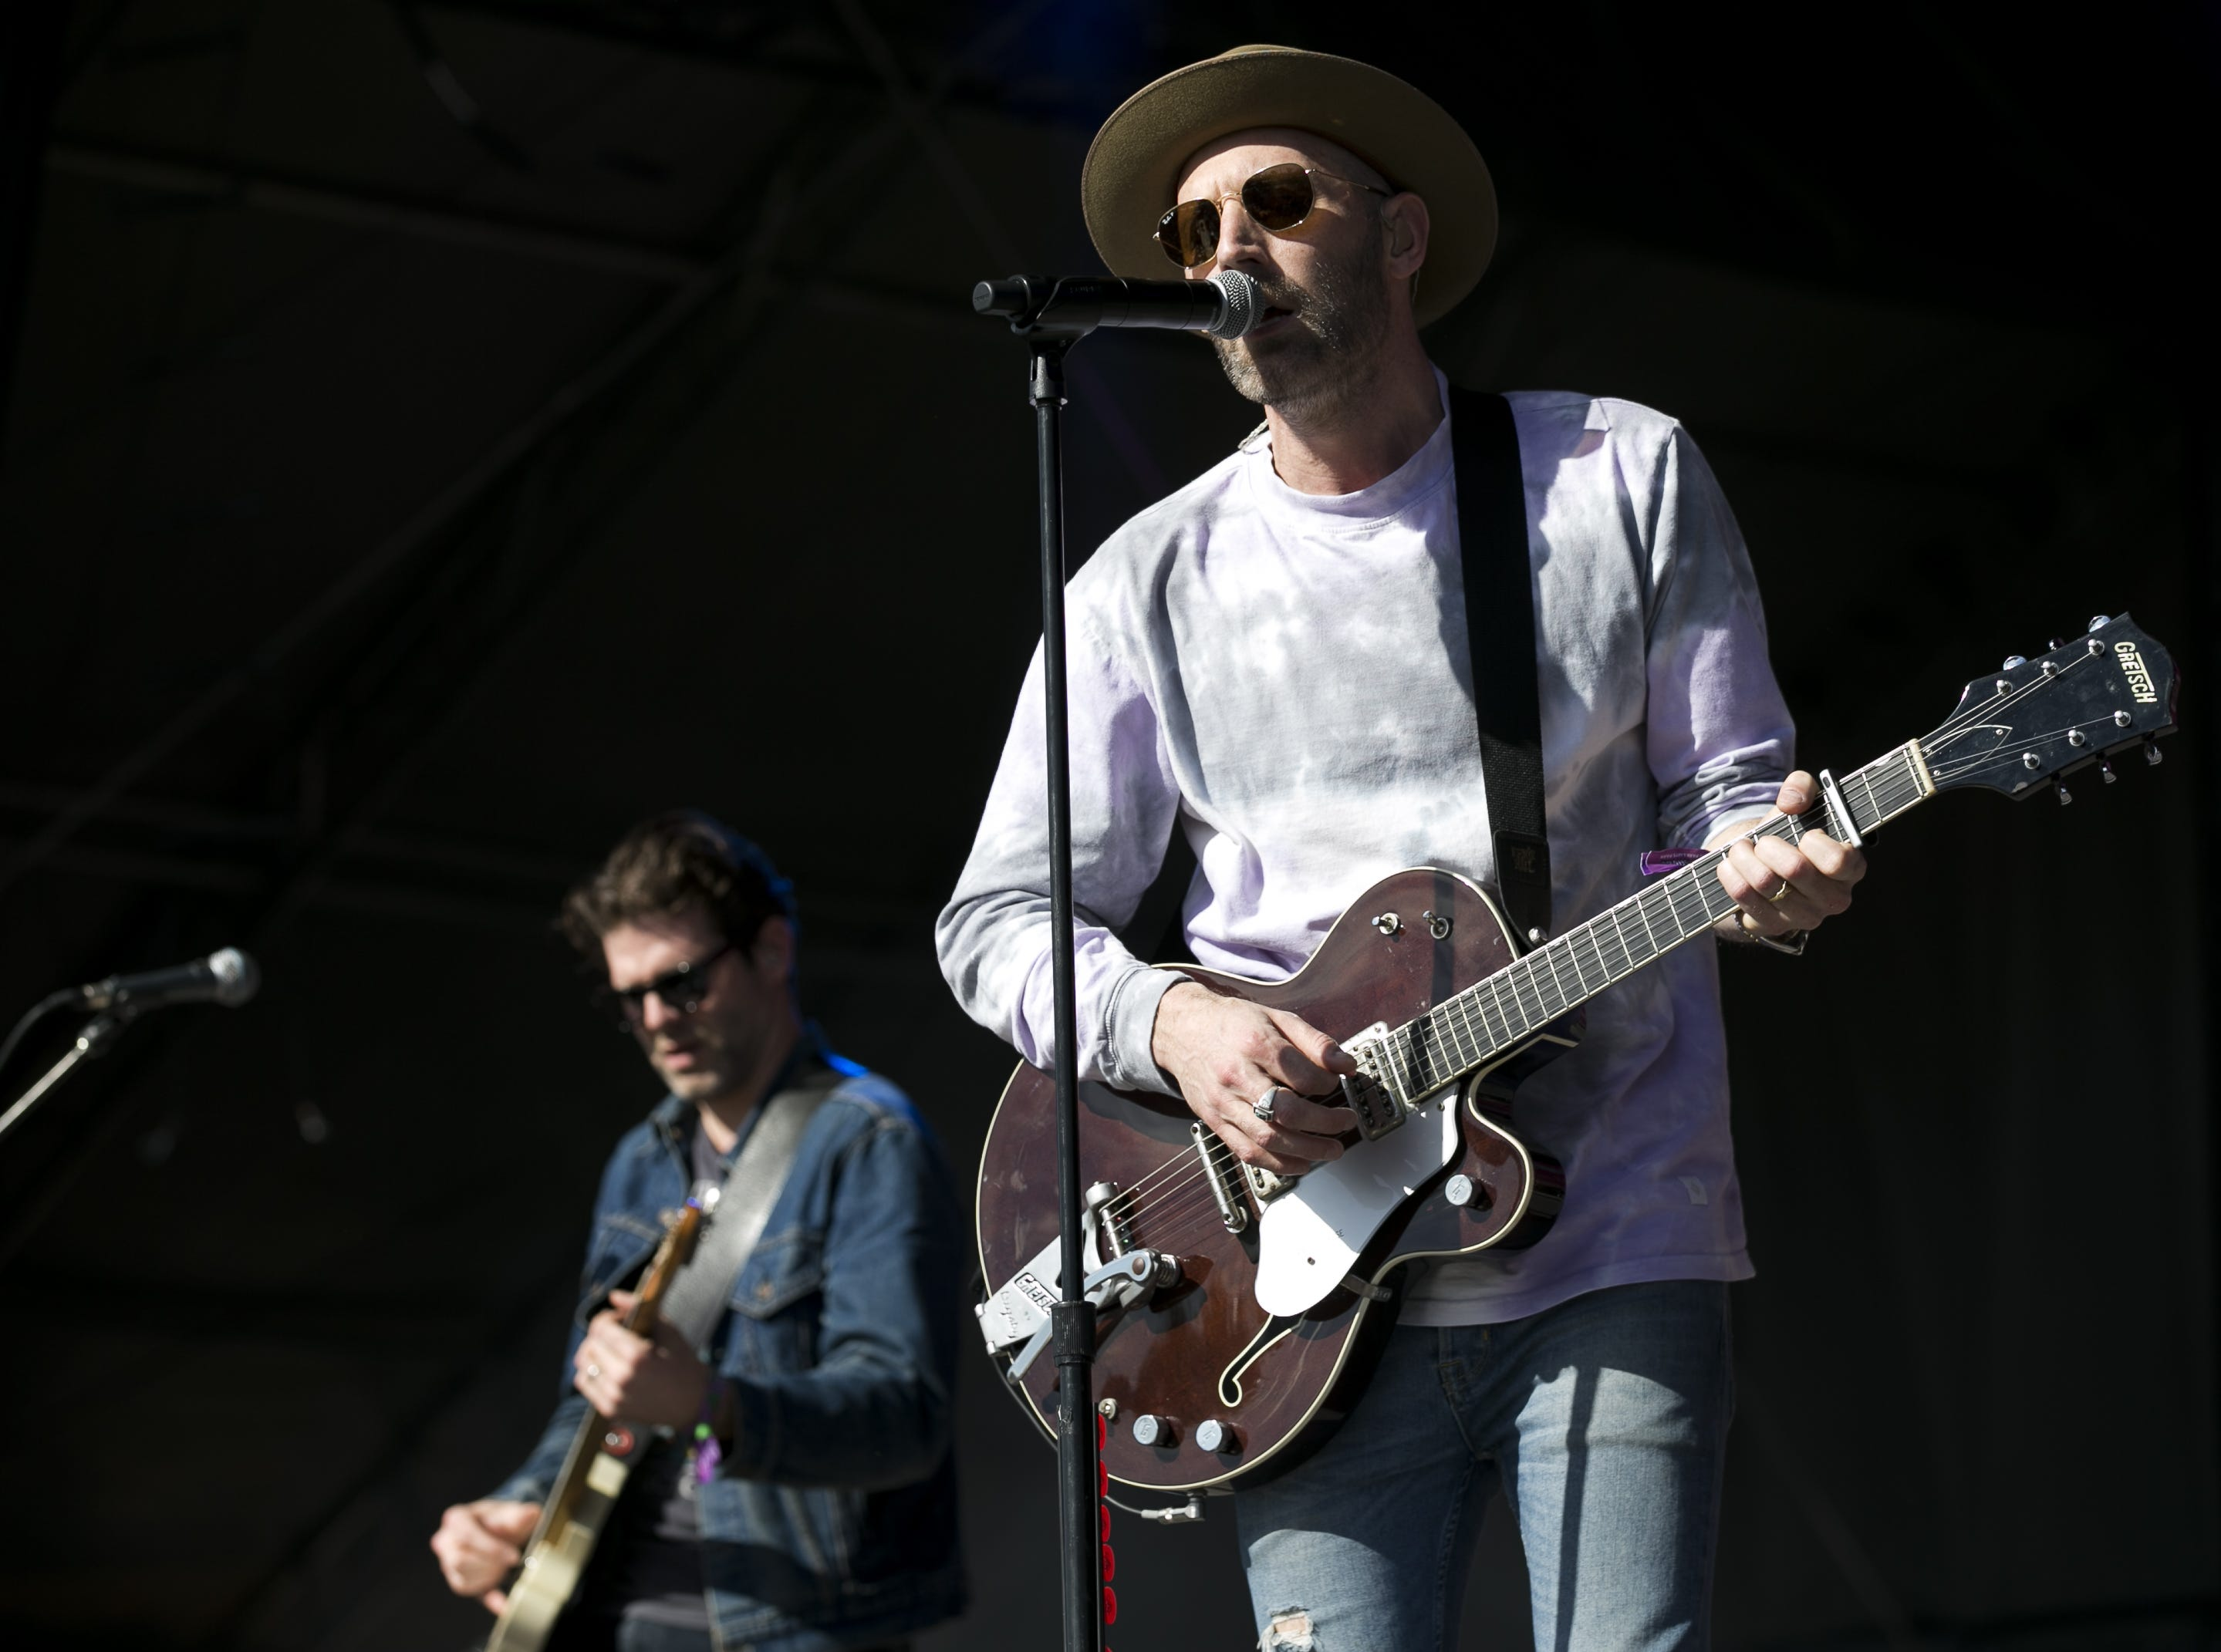 Mat Kearney and his band perform at the Innings Festival at Tempe Beach Park in Ariz. on Sunday, March 3, 2019.